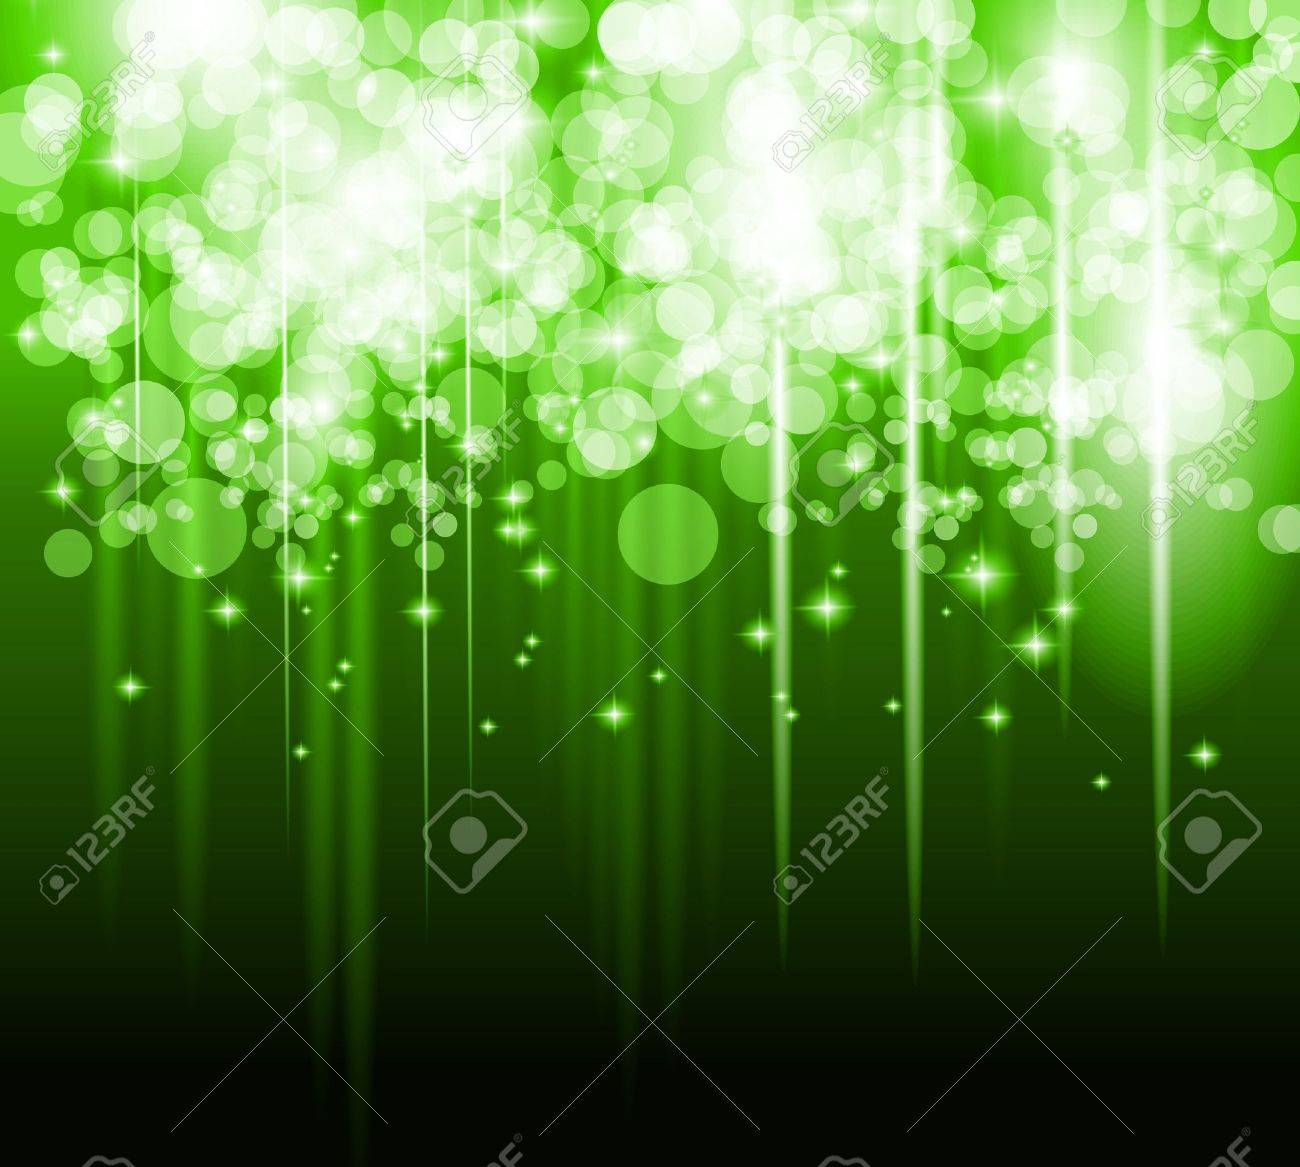 Abstract futuristic background with striped lights and a flow of sparkling stars. Ideal for cover, brochures or posters. - 15150417